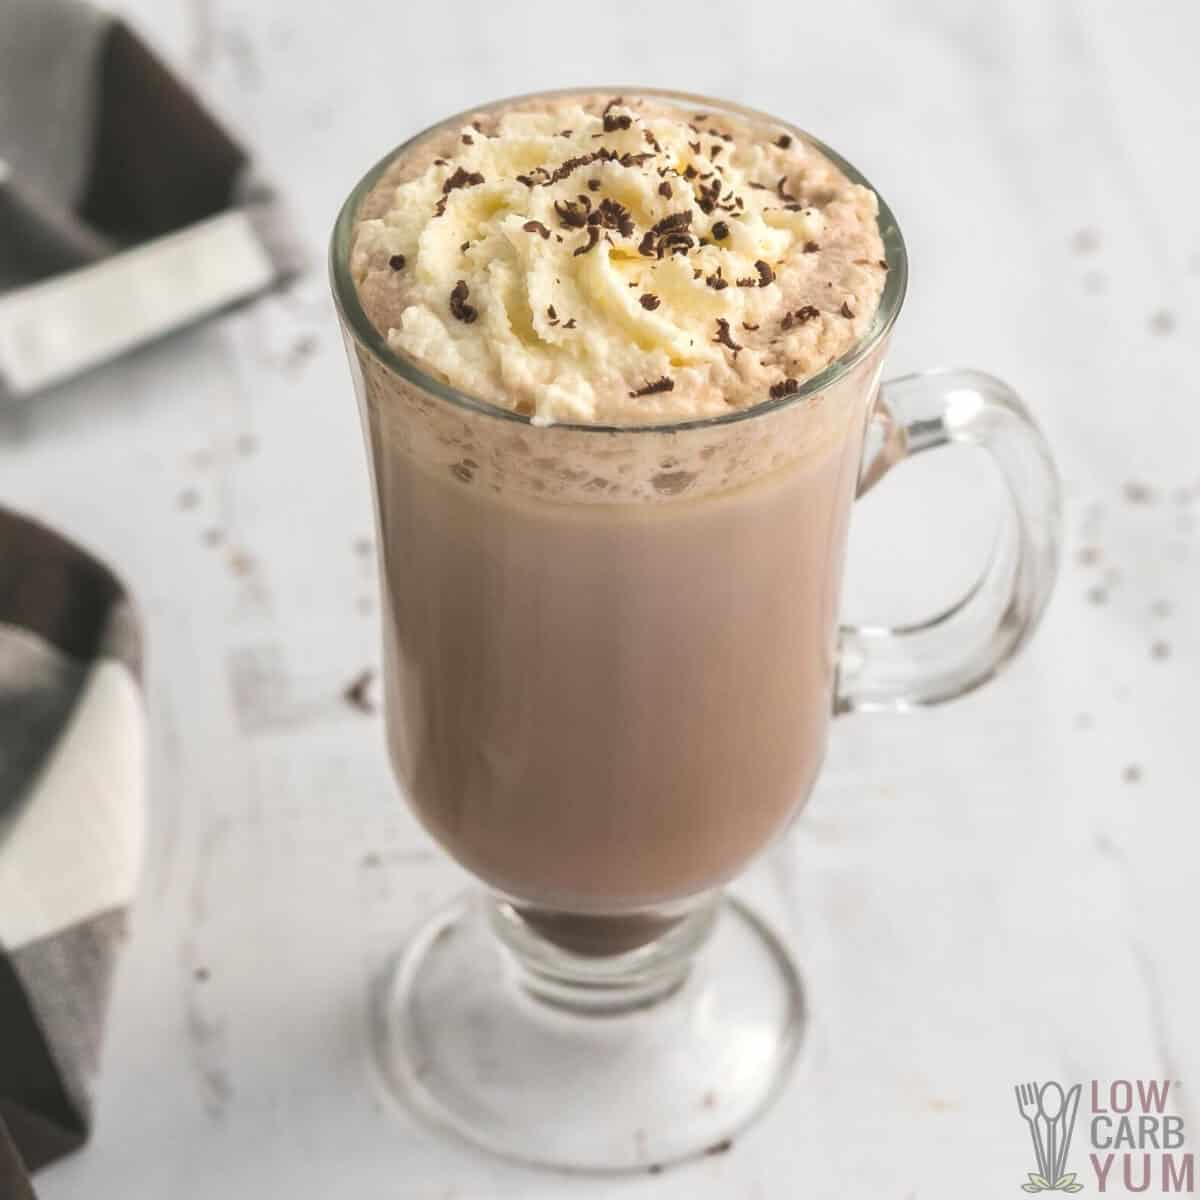 sugar free low carb keto hot chocolate in glass cup